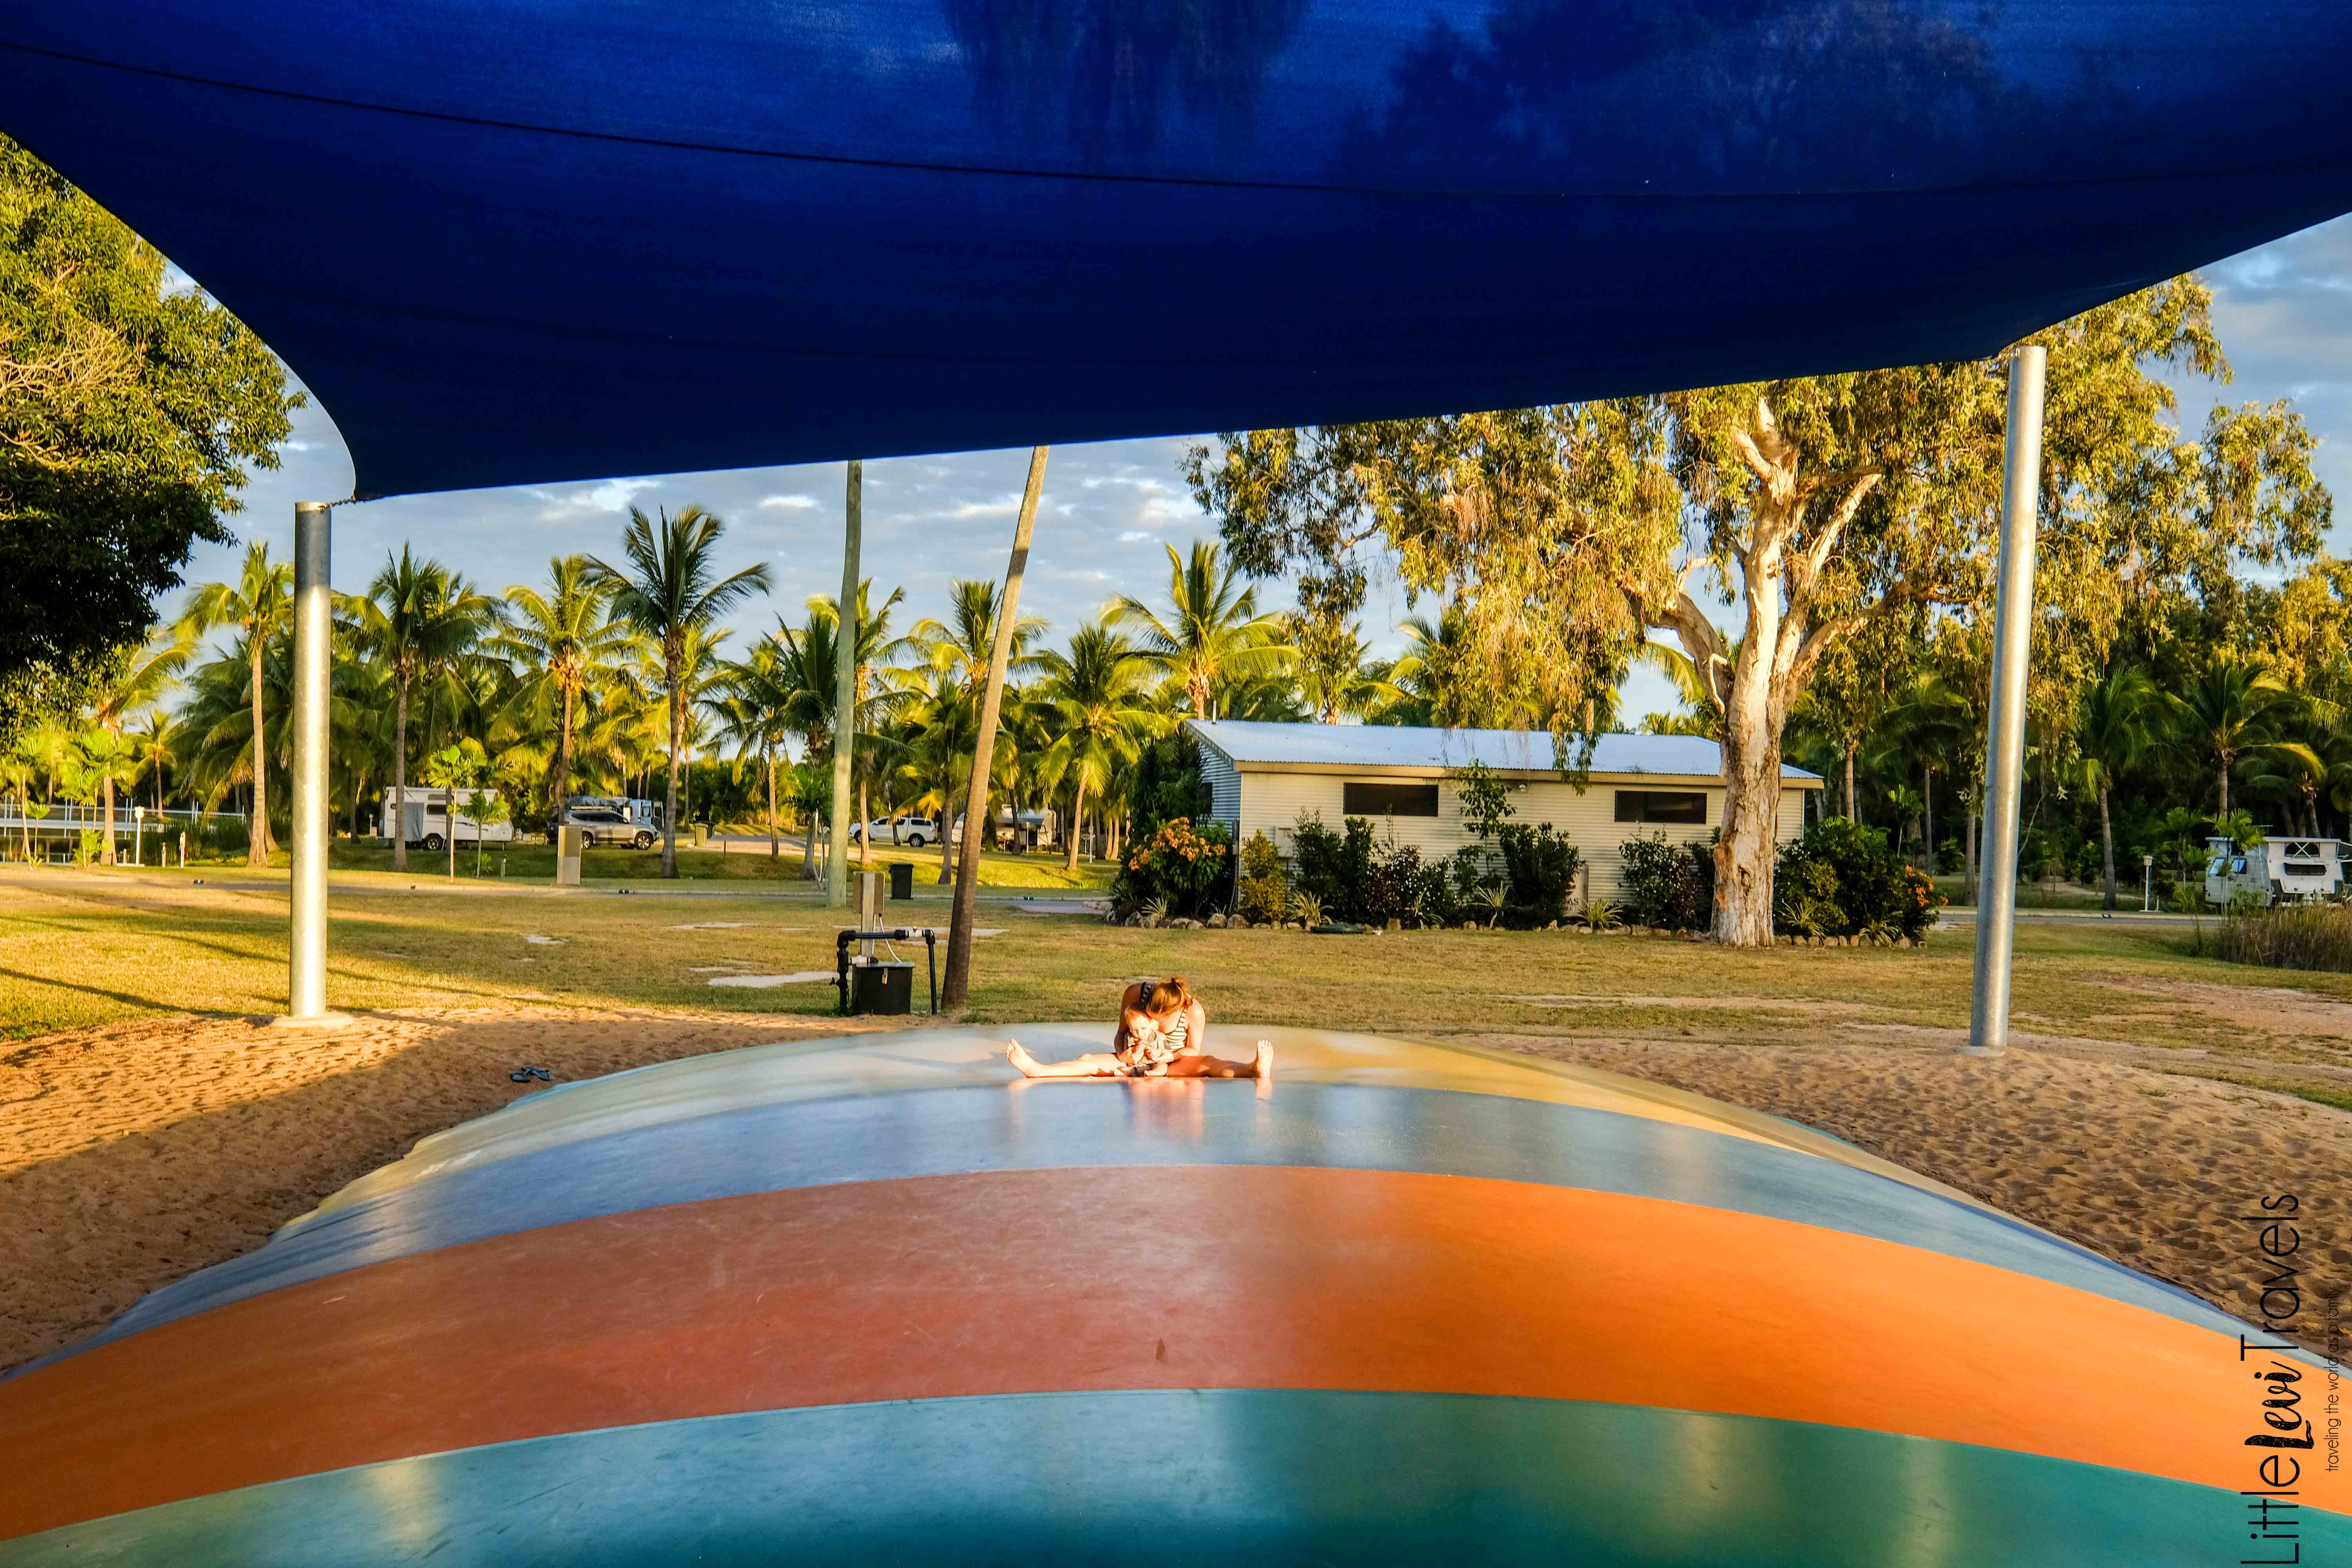 Our last stop on the road… (Rollingstone to Cairns)